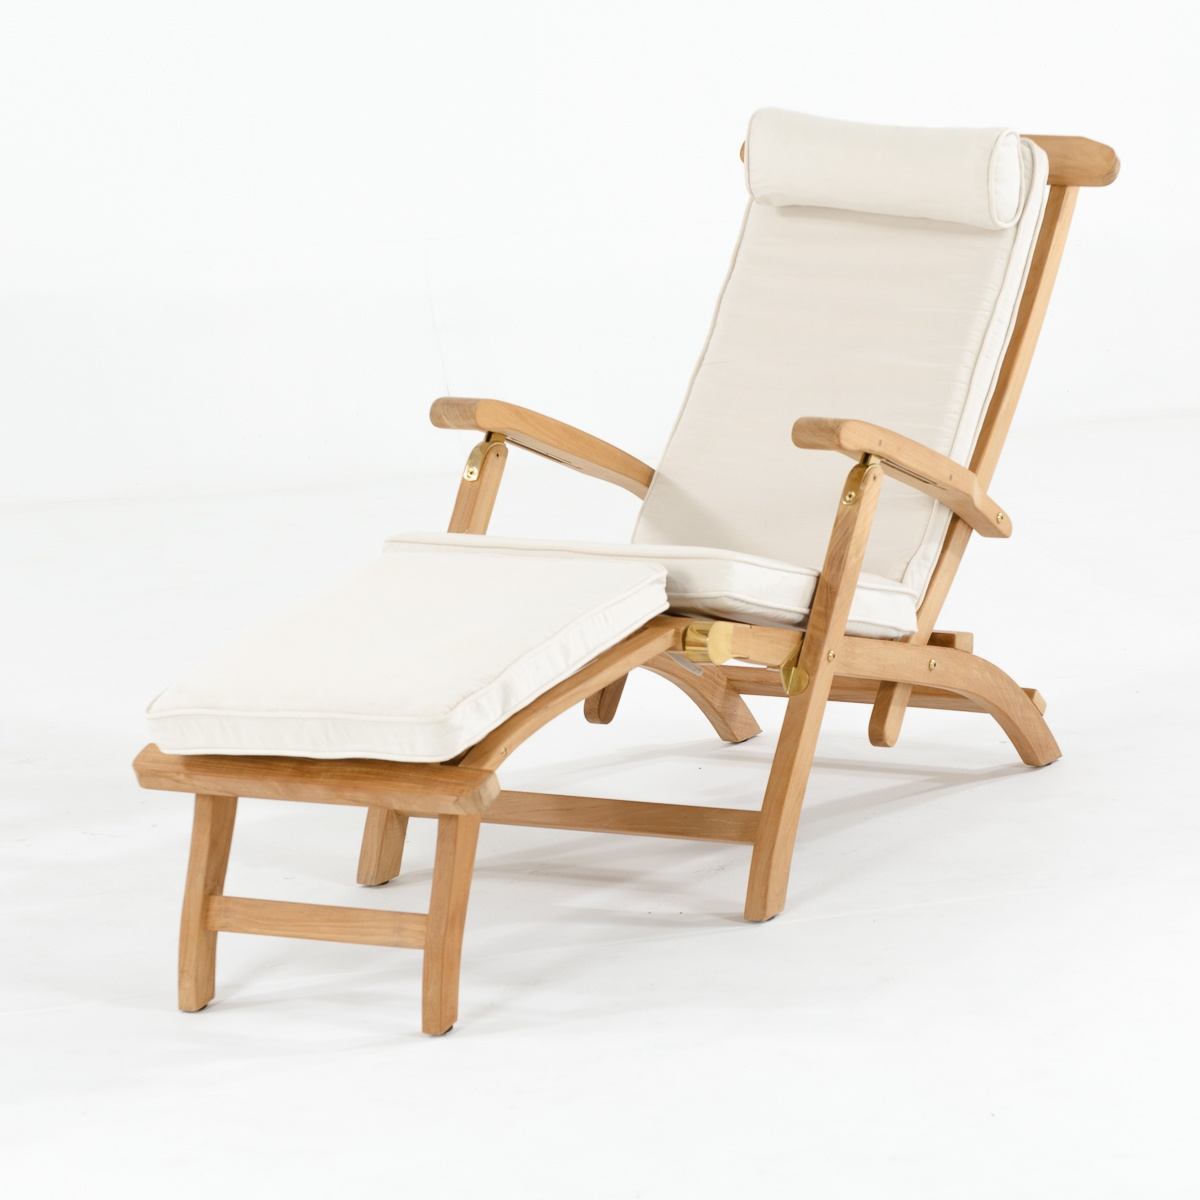 cushions for teak steamer chairs how much is a massage chair sunbrella cushion westminster outdoor furniture